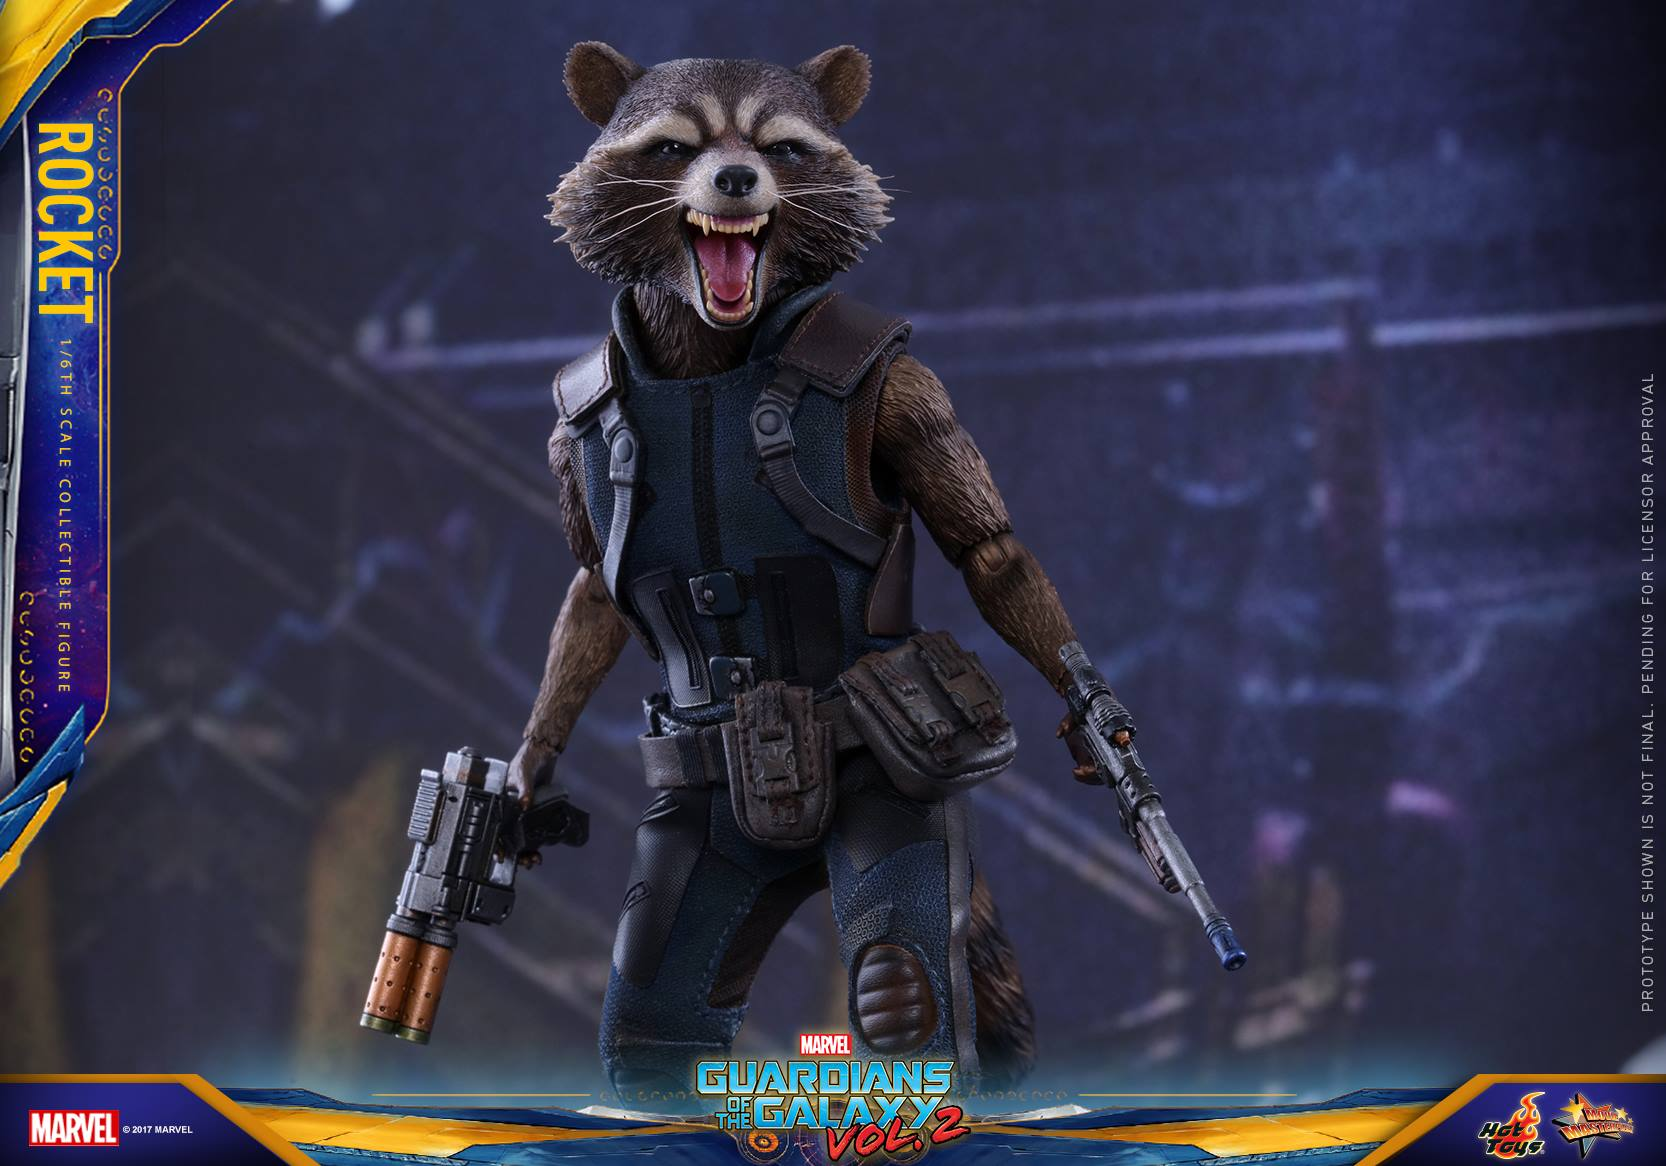 GOTG Vol. 2 - 1/6th scale Rocket Collectible Figure